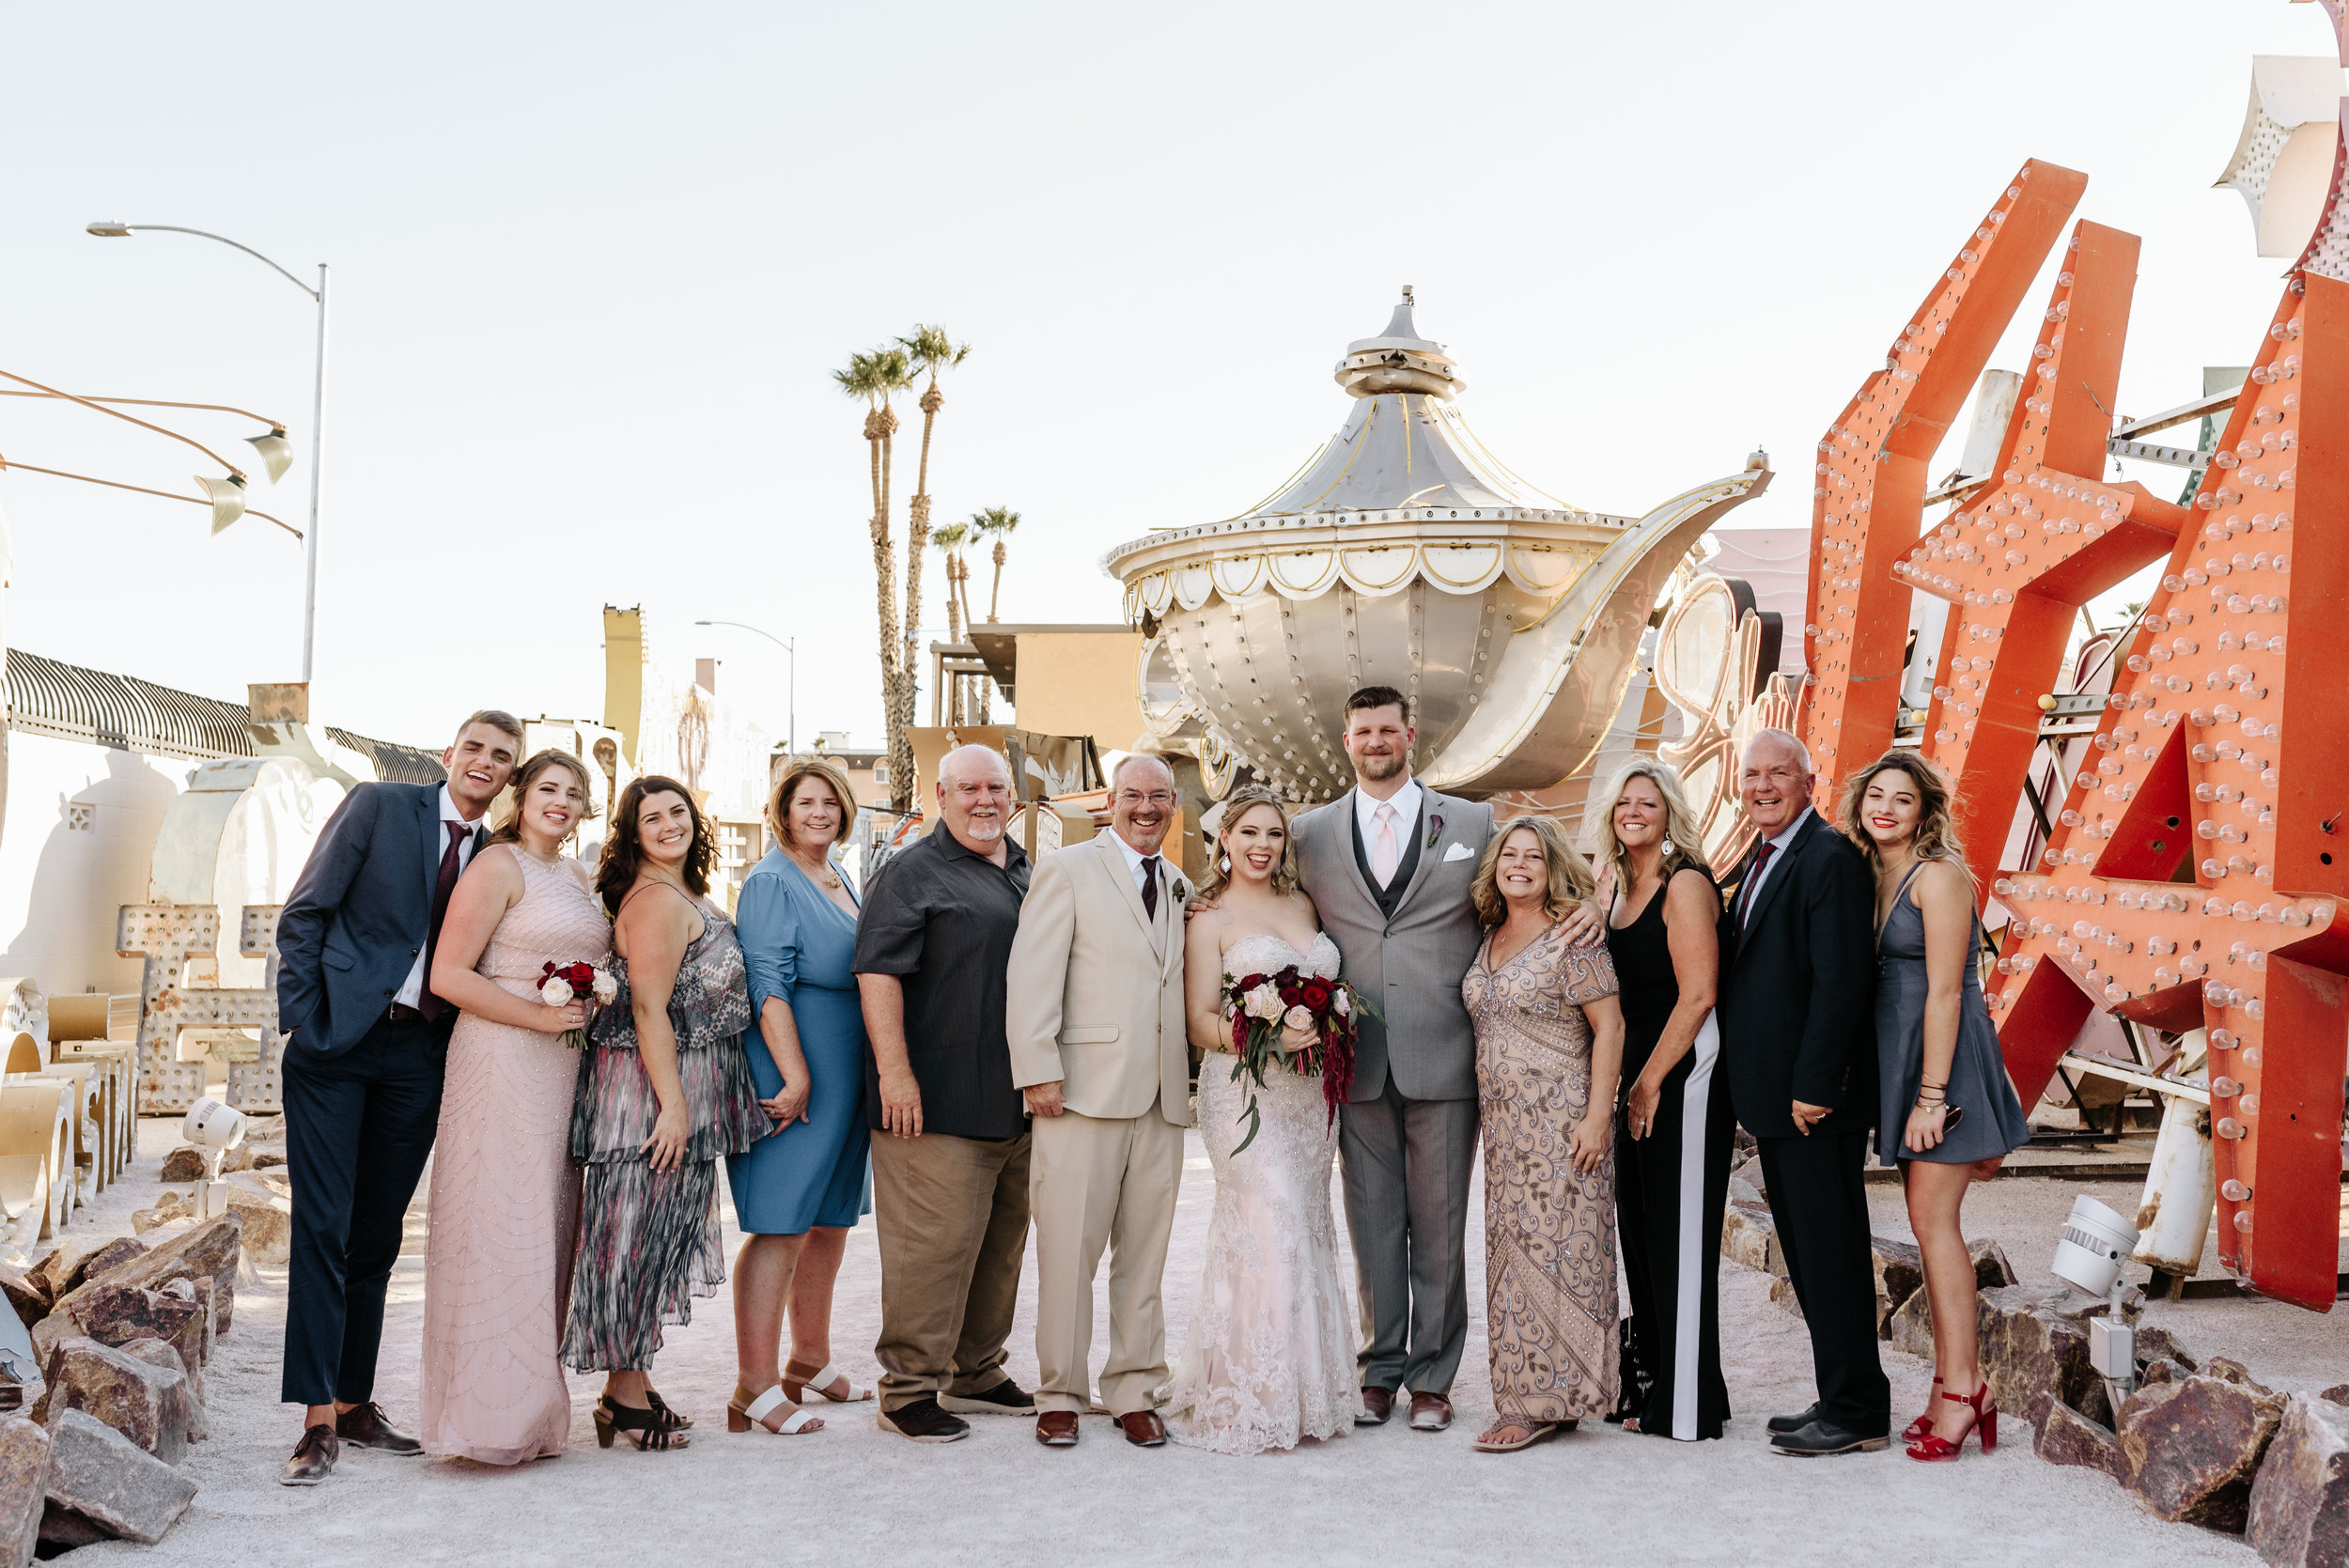 Neon-Museum-Wedding-Las-Vegas-Nevada-Golden-Nugget-Photography-by-V-Ally-and-Dan-2955.jpg